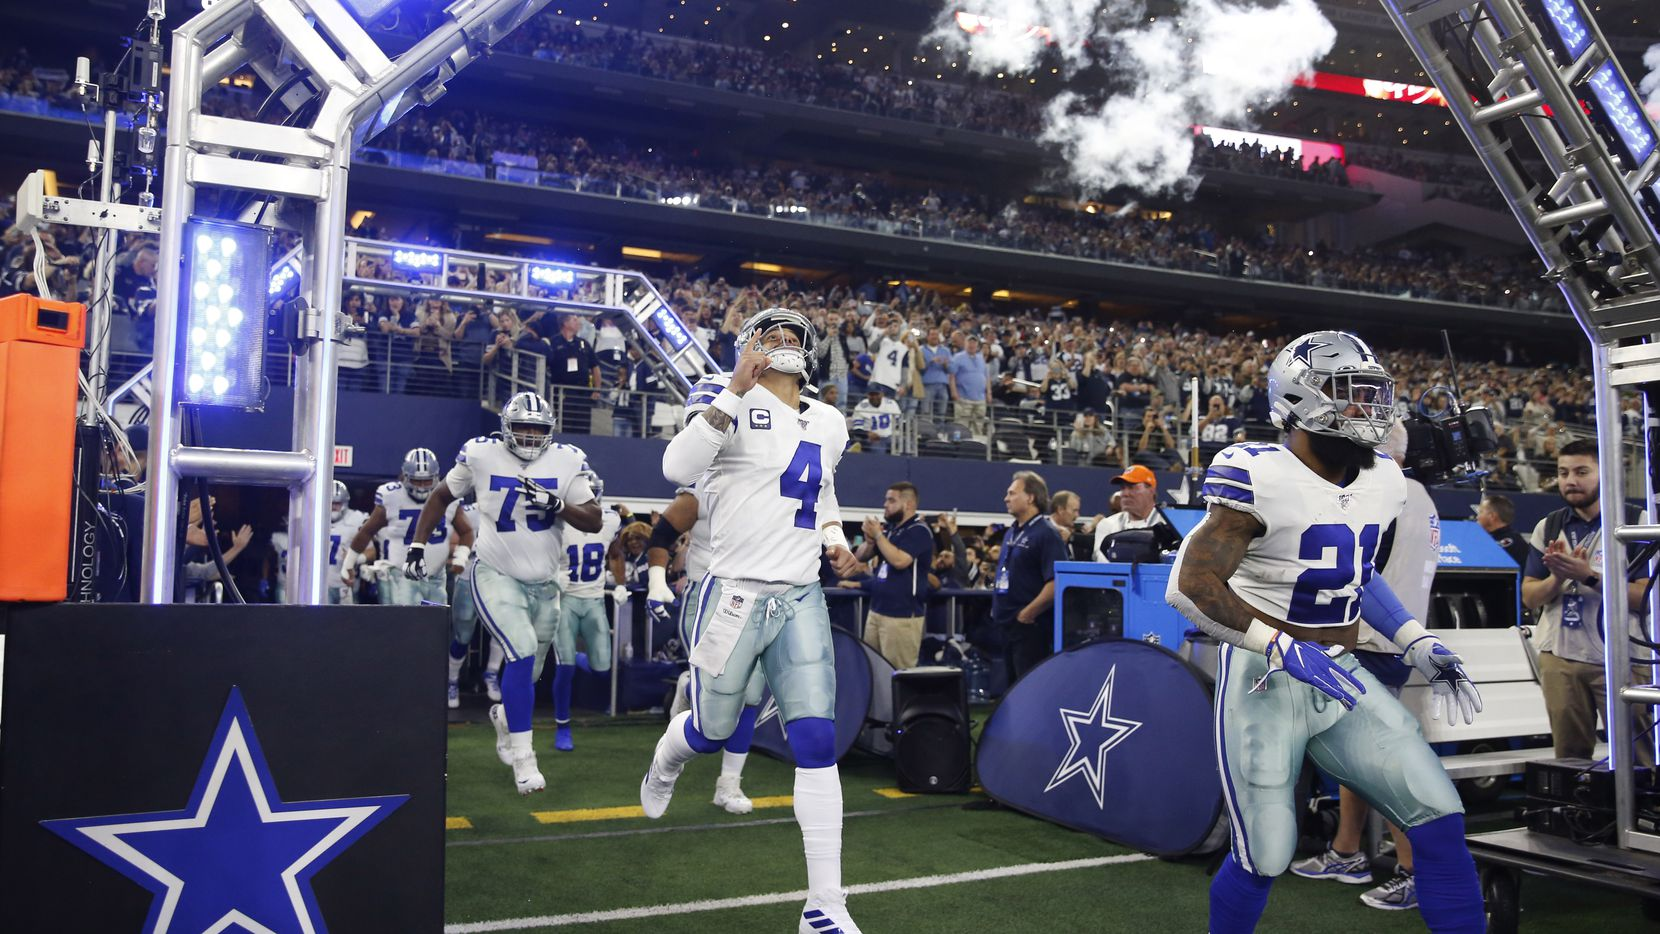 Dallas Cowboys quarterback Dak Prescott (4), Dallas Cowboys running back Ezekiel Elliott (21) and players take the field as they are introduced before playing against the Buffalo Bills at AT&T Stadium in Arlington, Texas on Thursday, November 28, 2019.